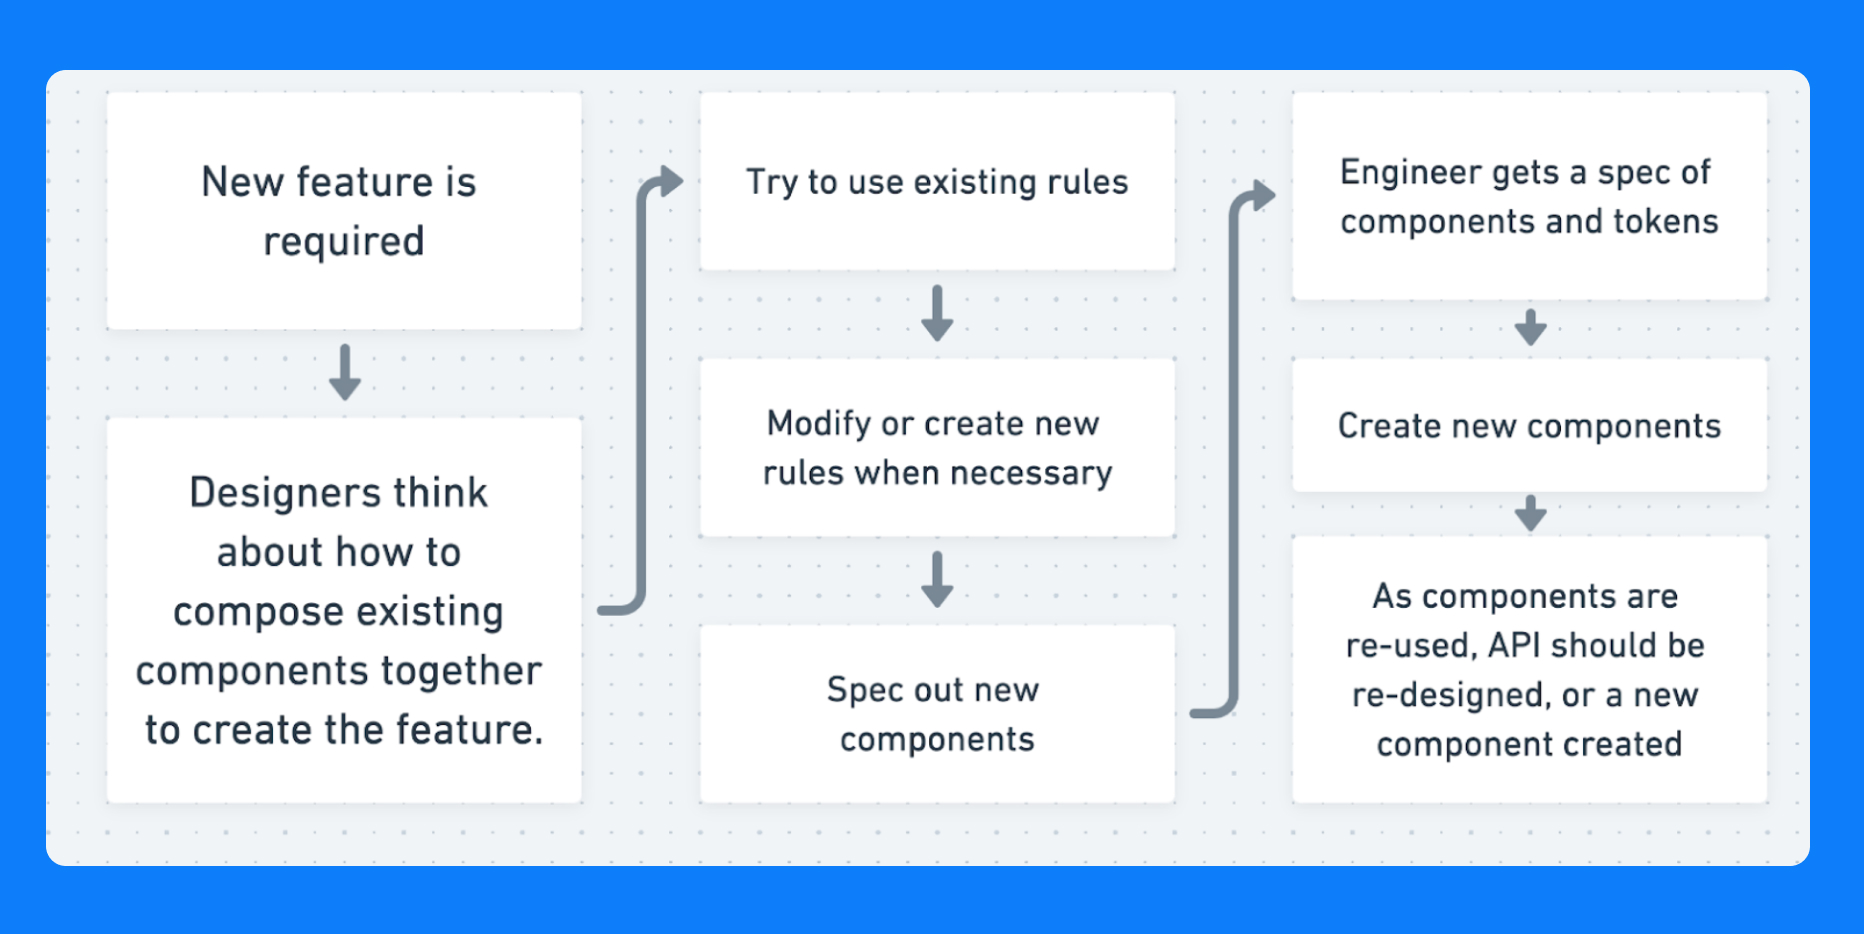 Our  new workflow . When a new feature is required, designers come together (with developer input) to create or revise components that fit multiple use cases and then deliver designs using those components.